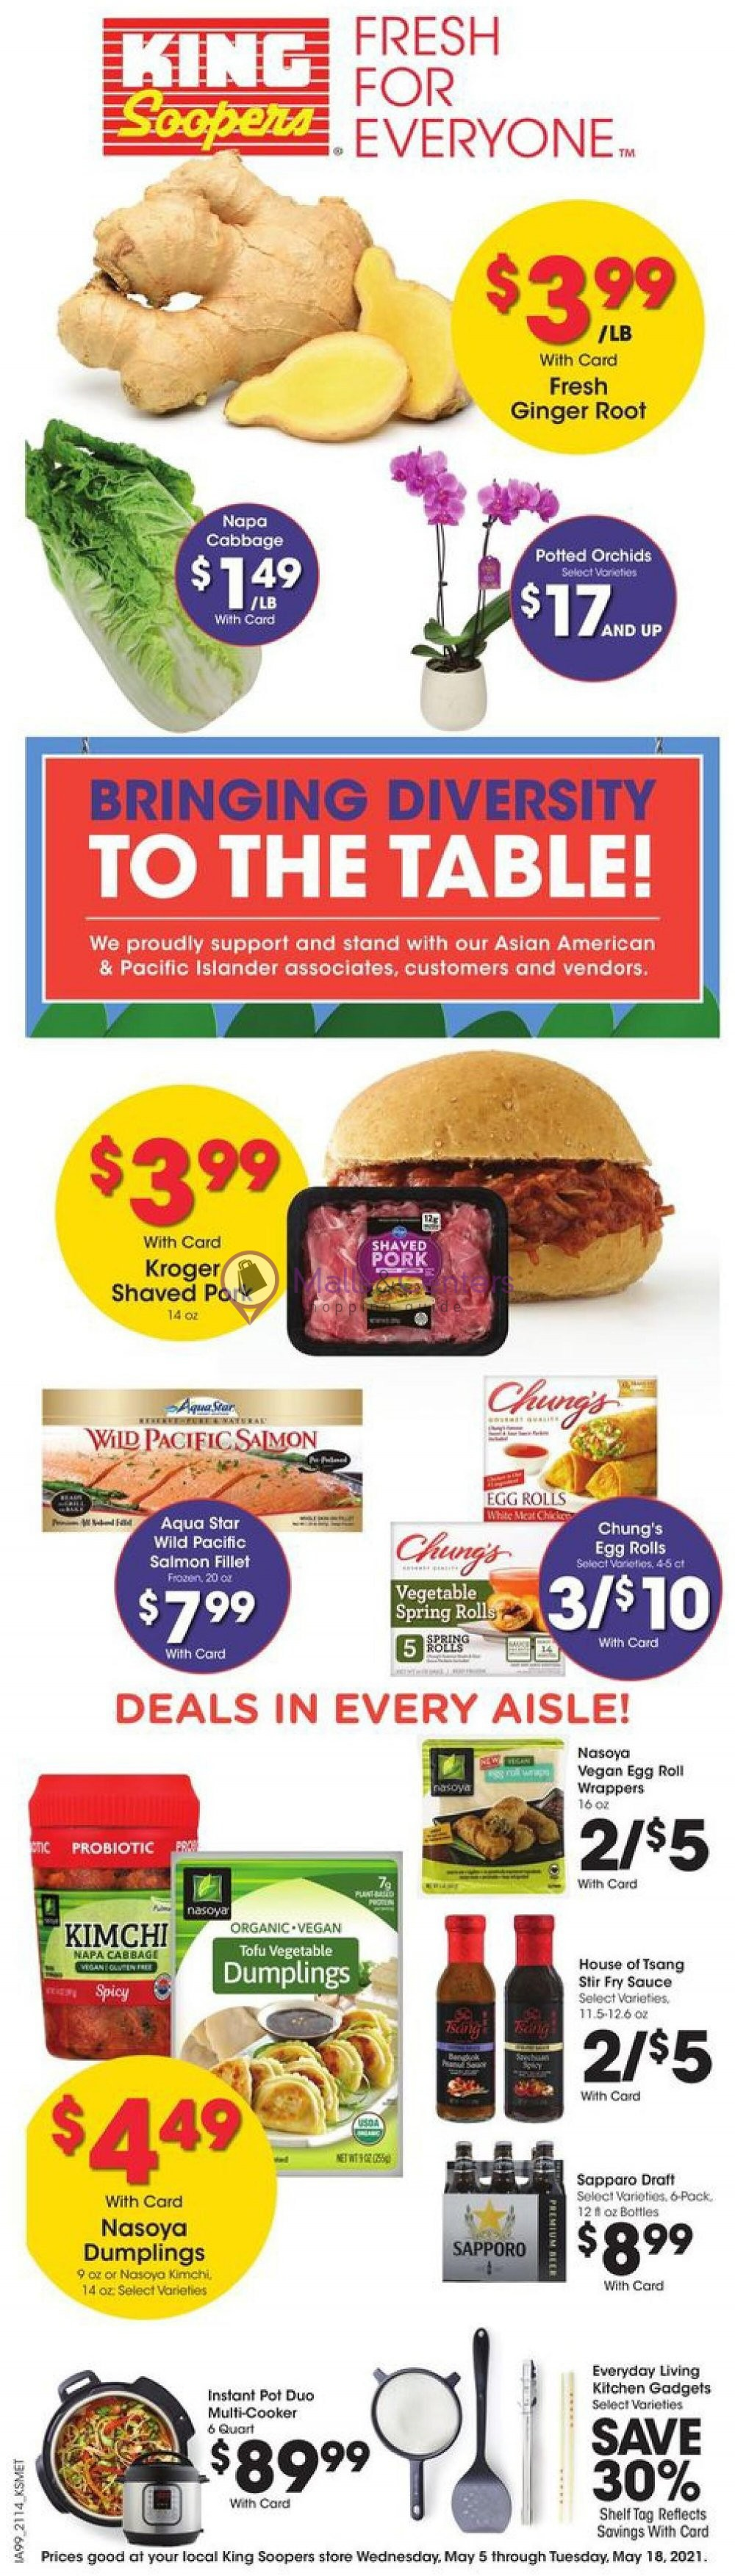 weekly ads King Soopers - page 1 - mallscenters.com